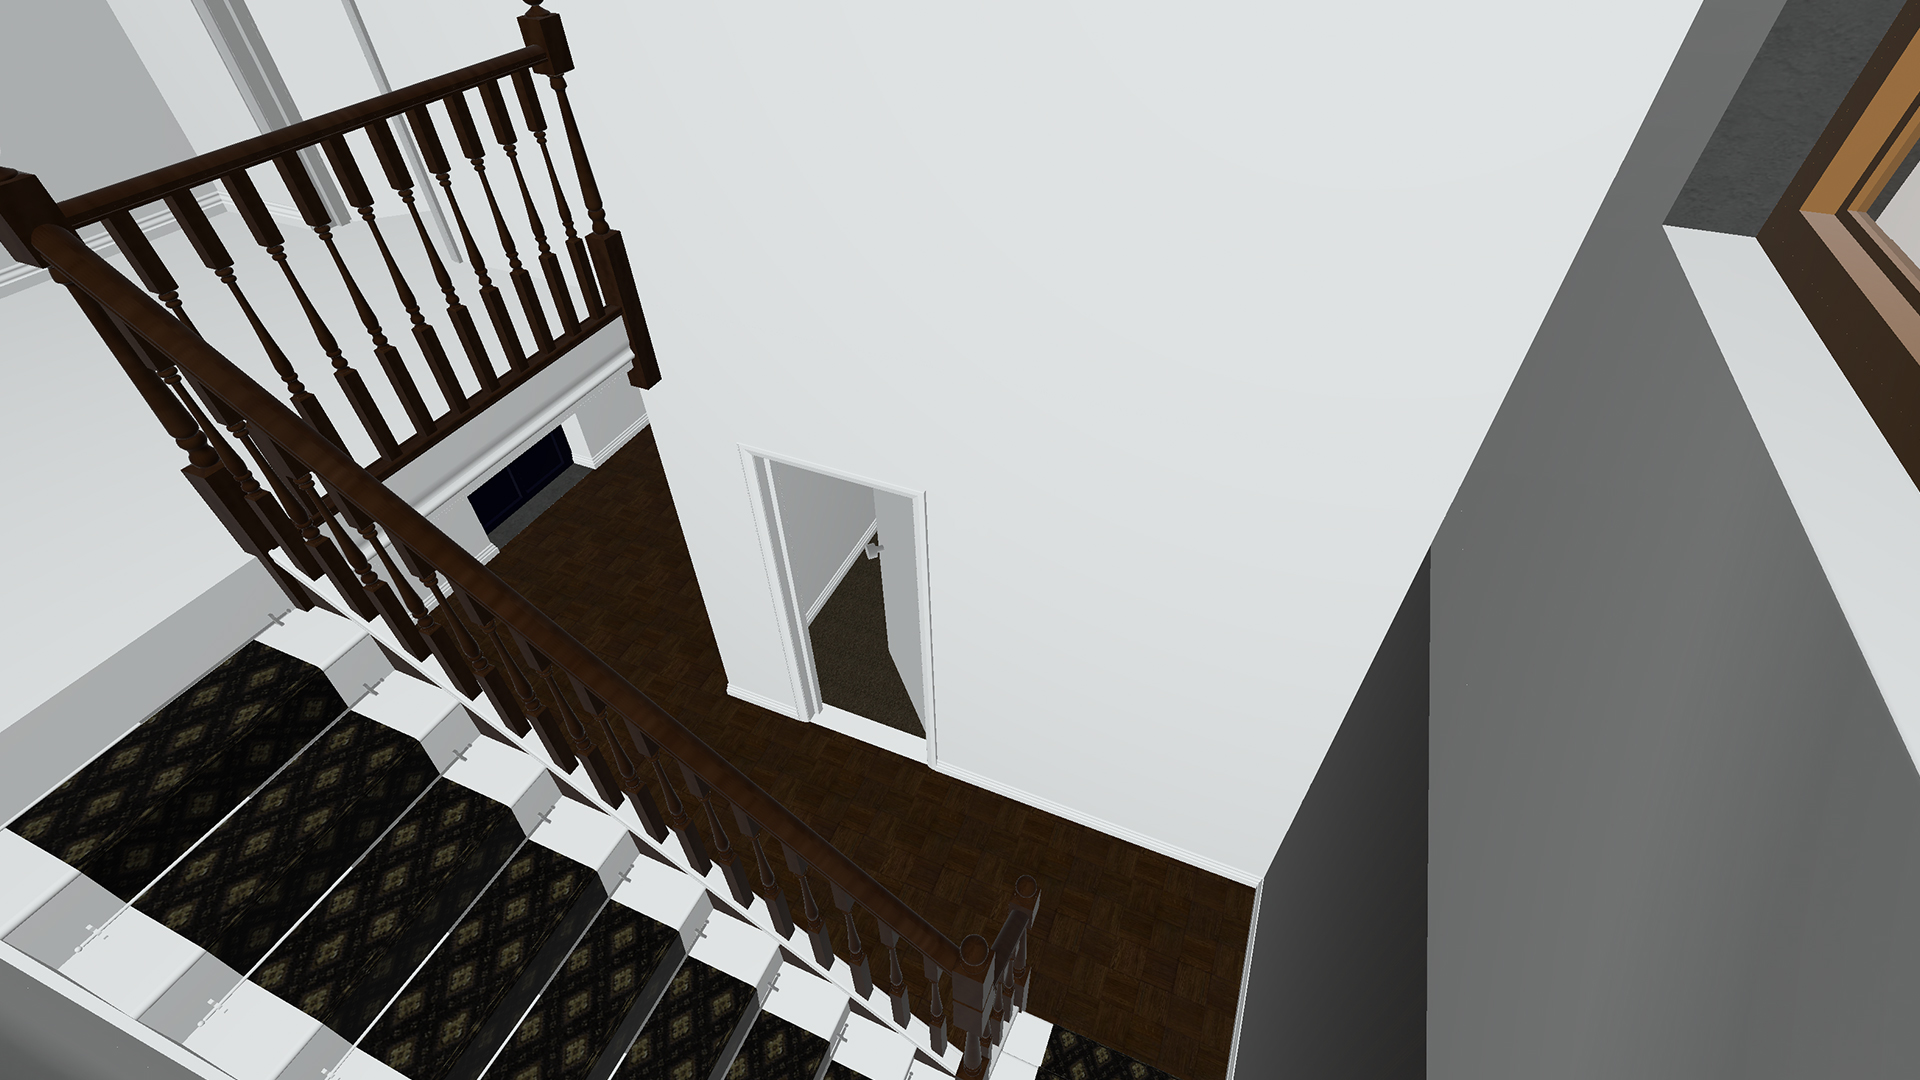 designing the ultimate man cave or she shed design in sketchup sketchup for architecture